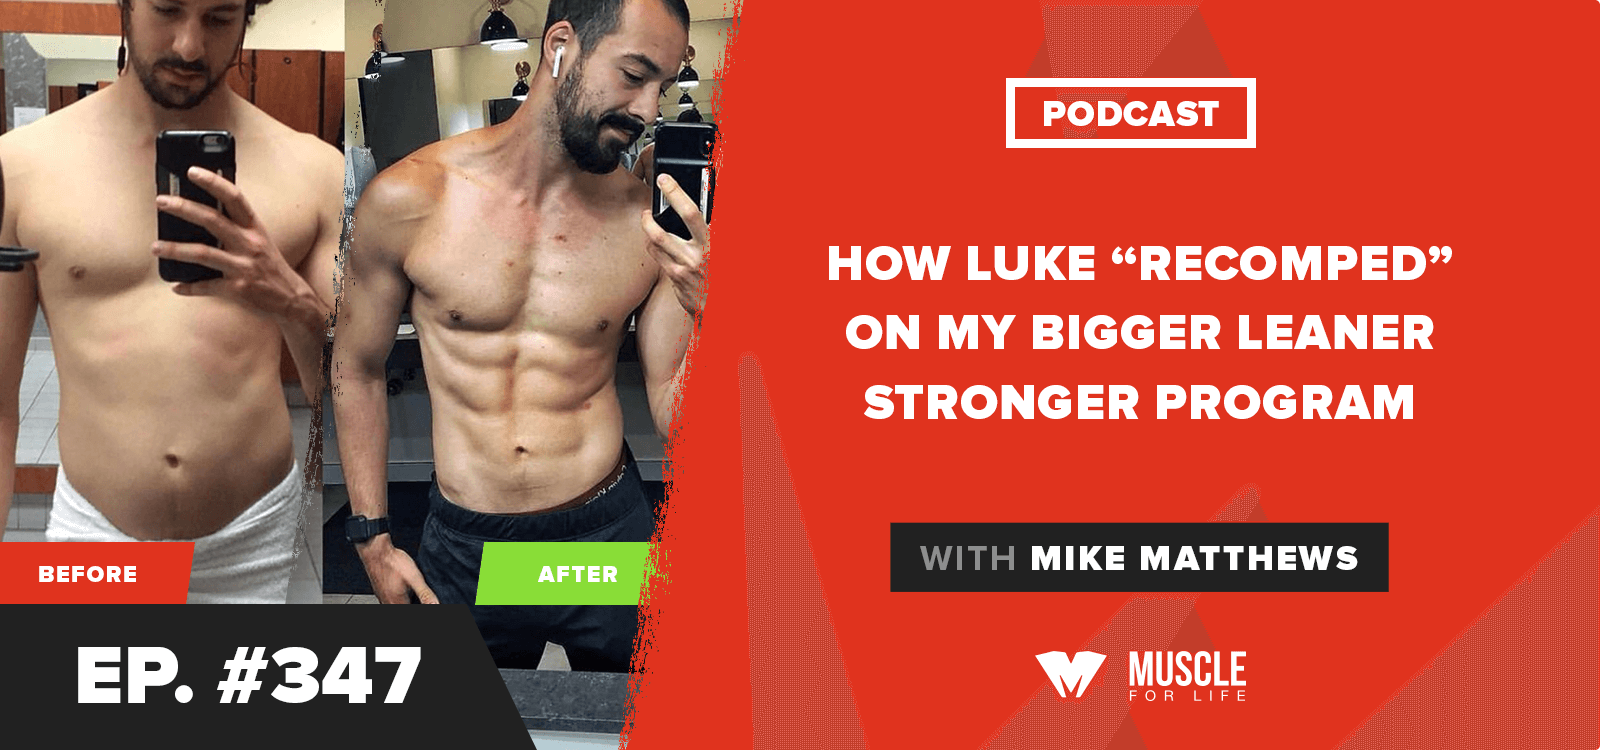 "How Luke ""Recomped"" on my Bigger Leaner Stronger Program"